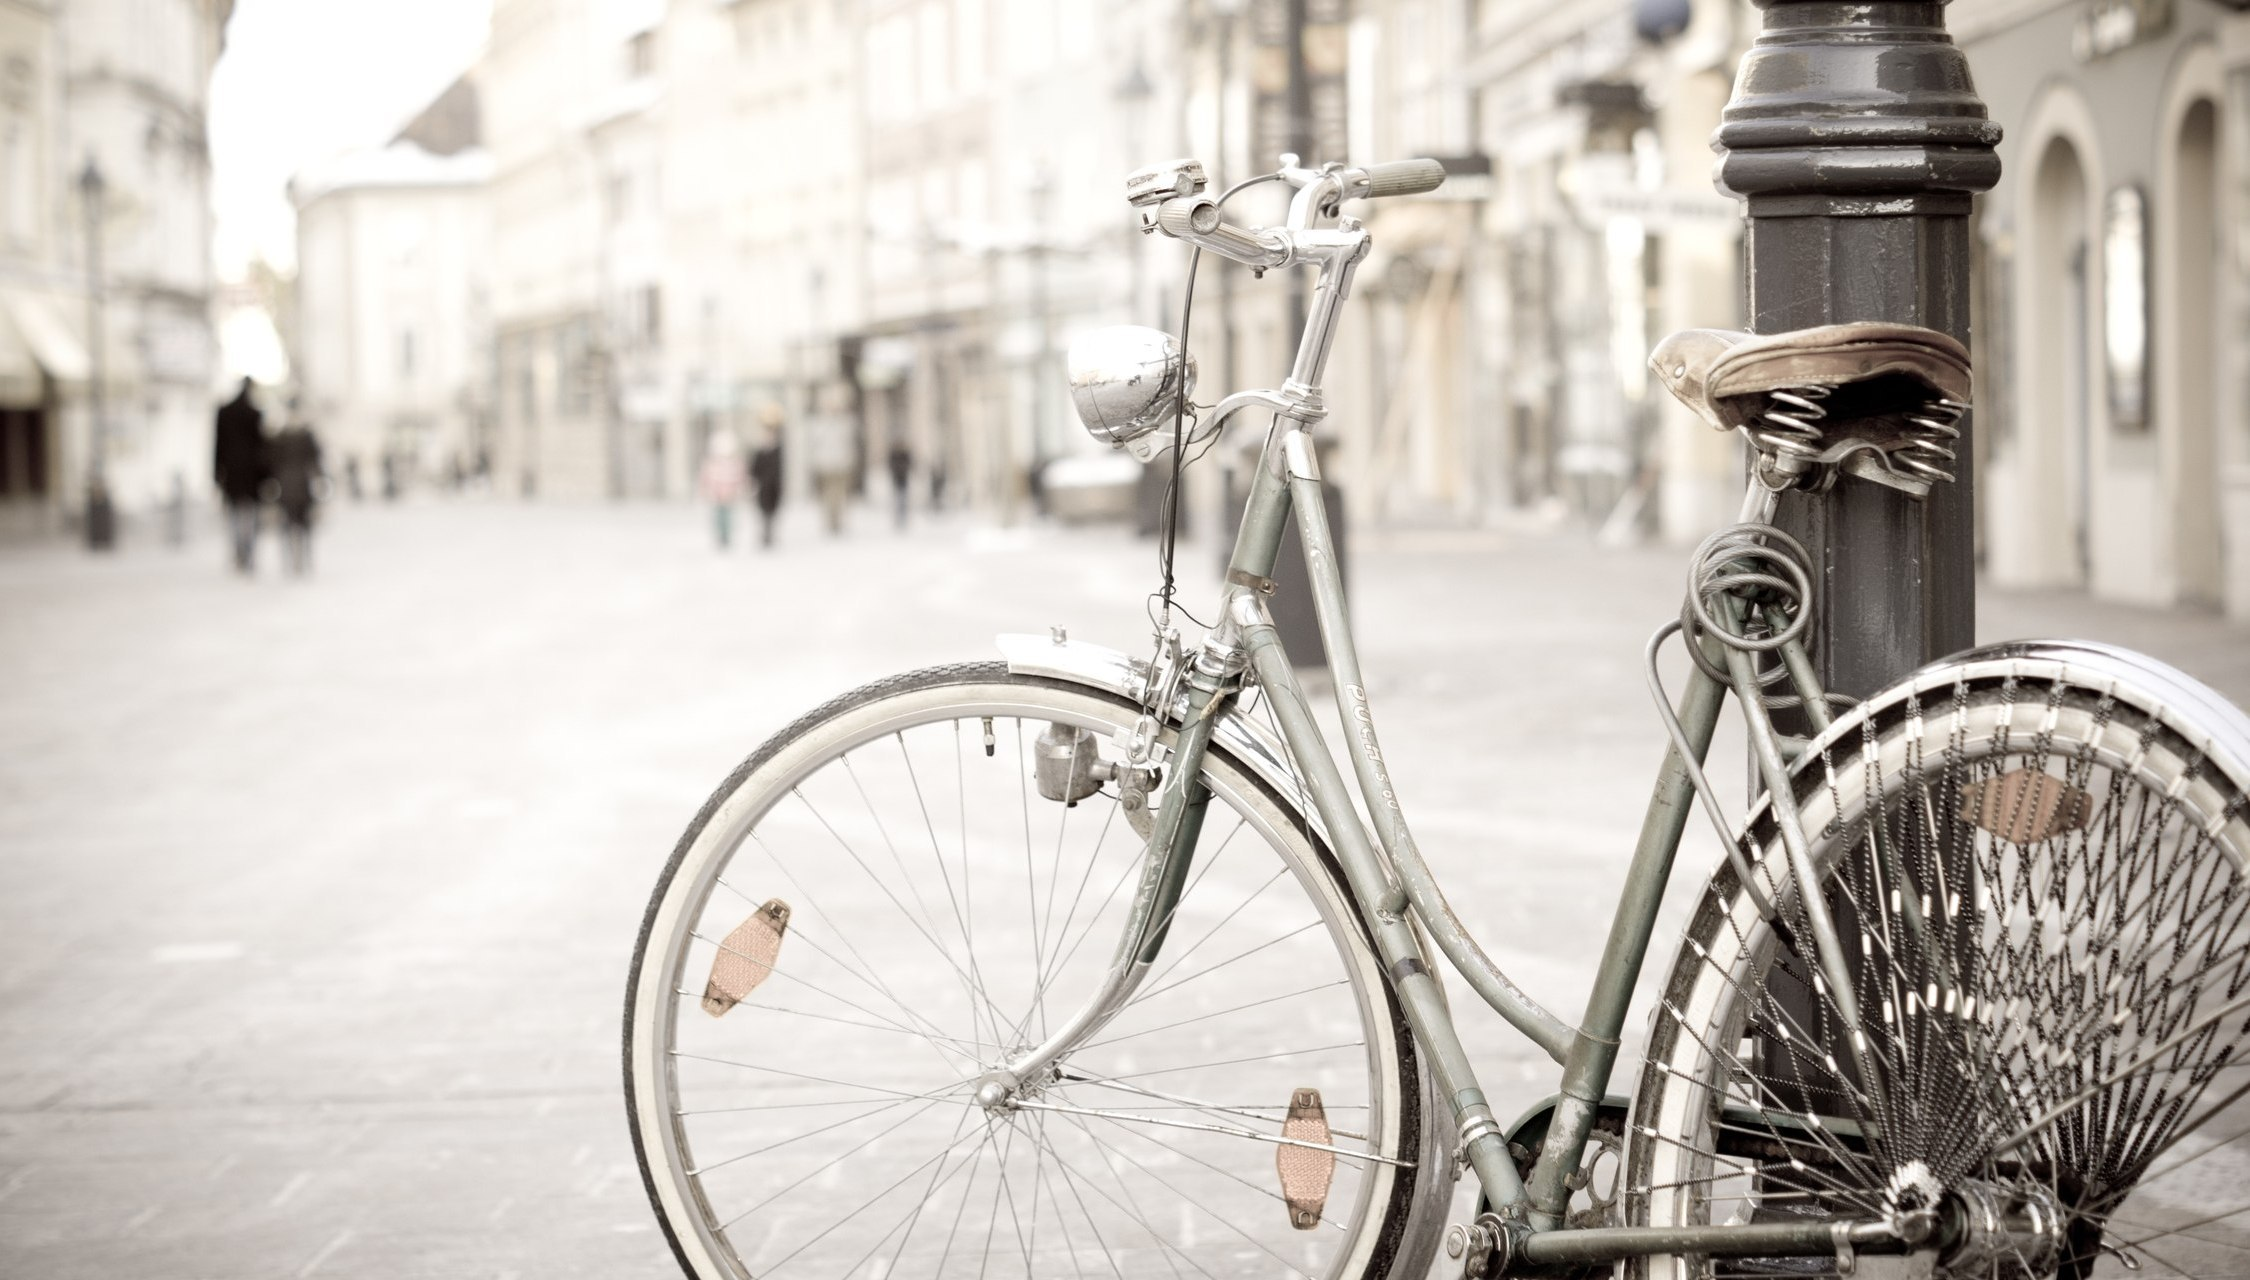 Bicycle Wallpaper 36719 2250x1280 px HDWallSourcecom